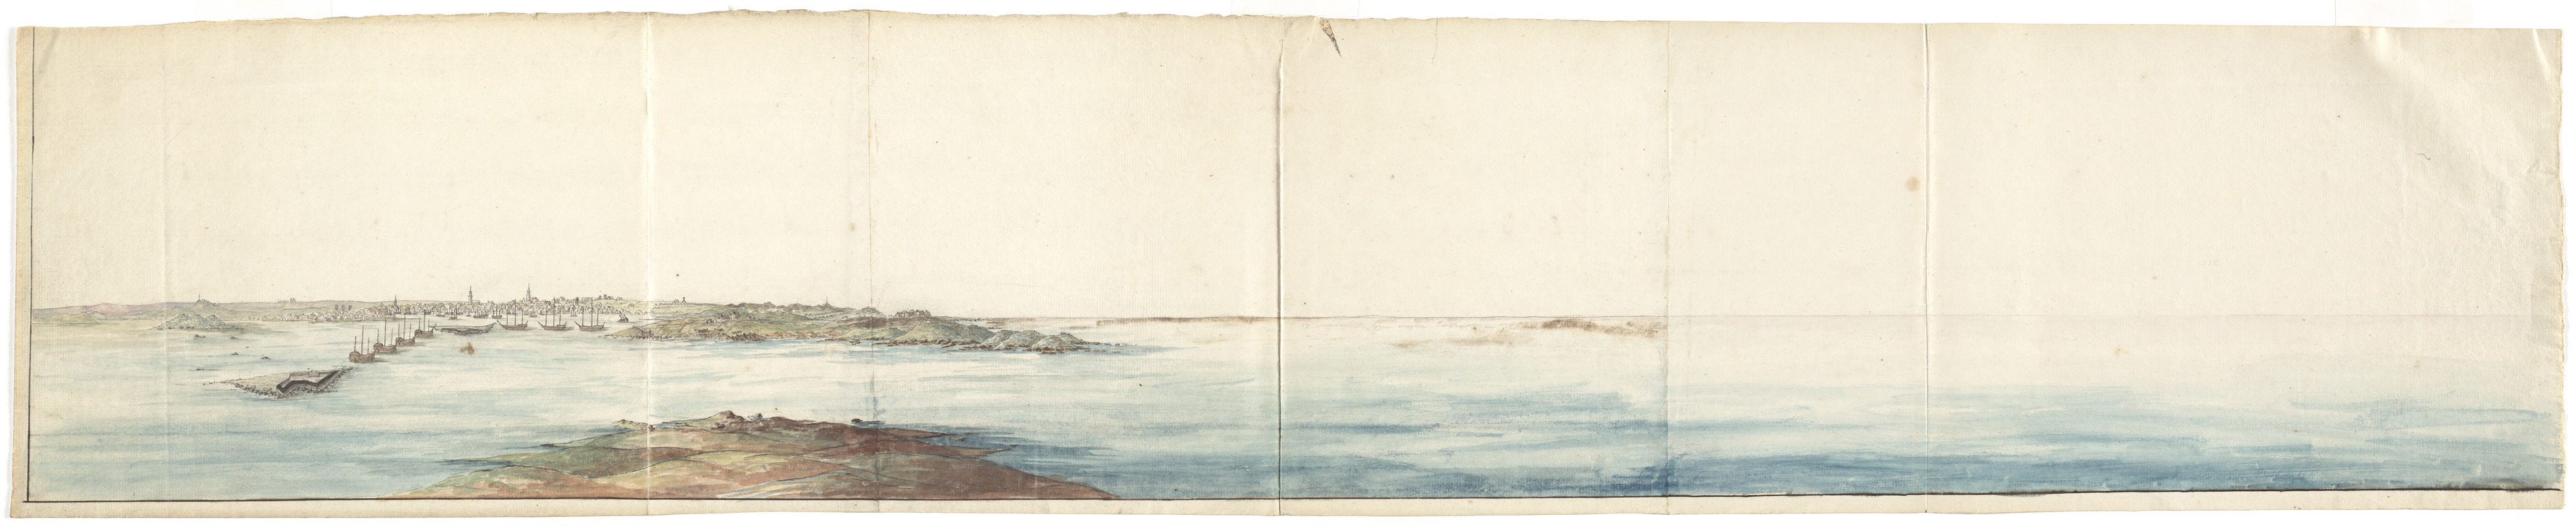 [Panoramic view of Newport, Rhode Island and the harbor showing the position of the French fleet and troop encampments]